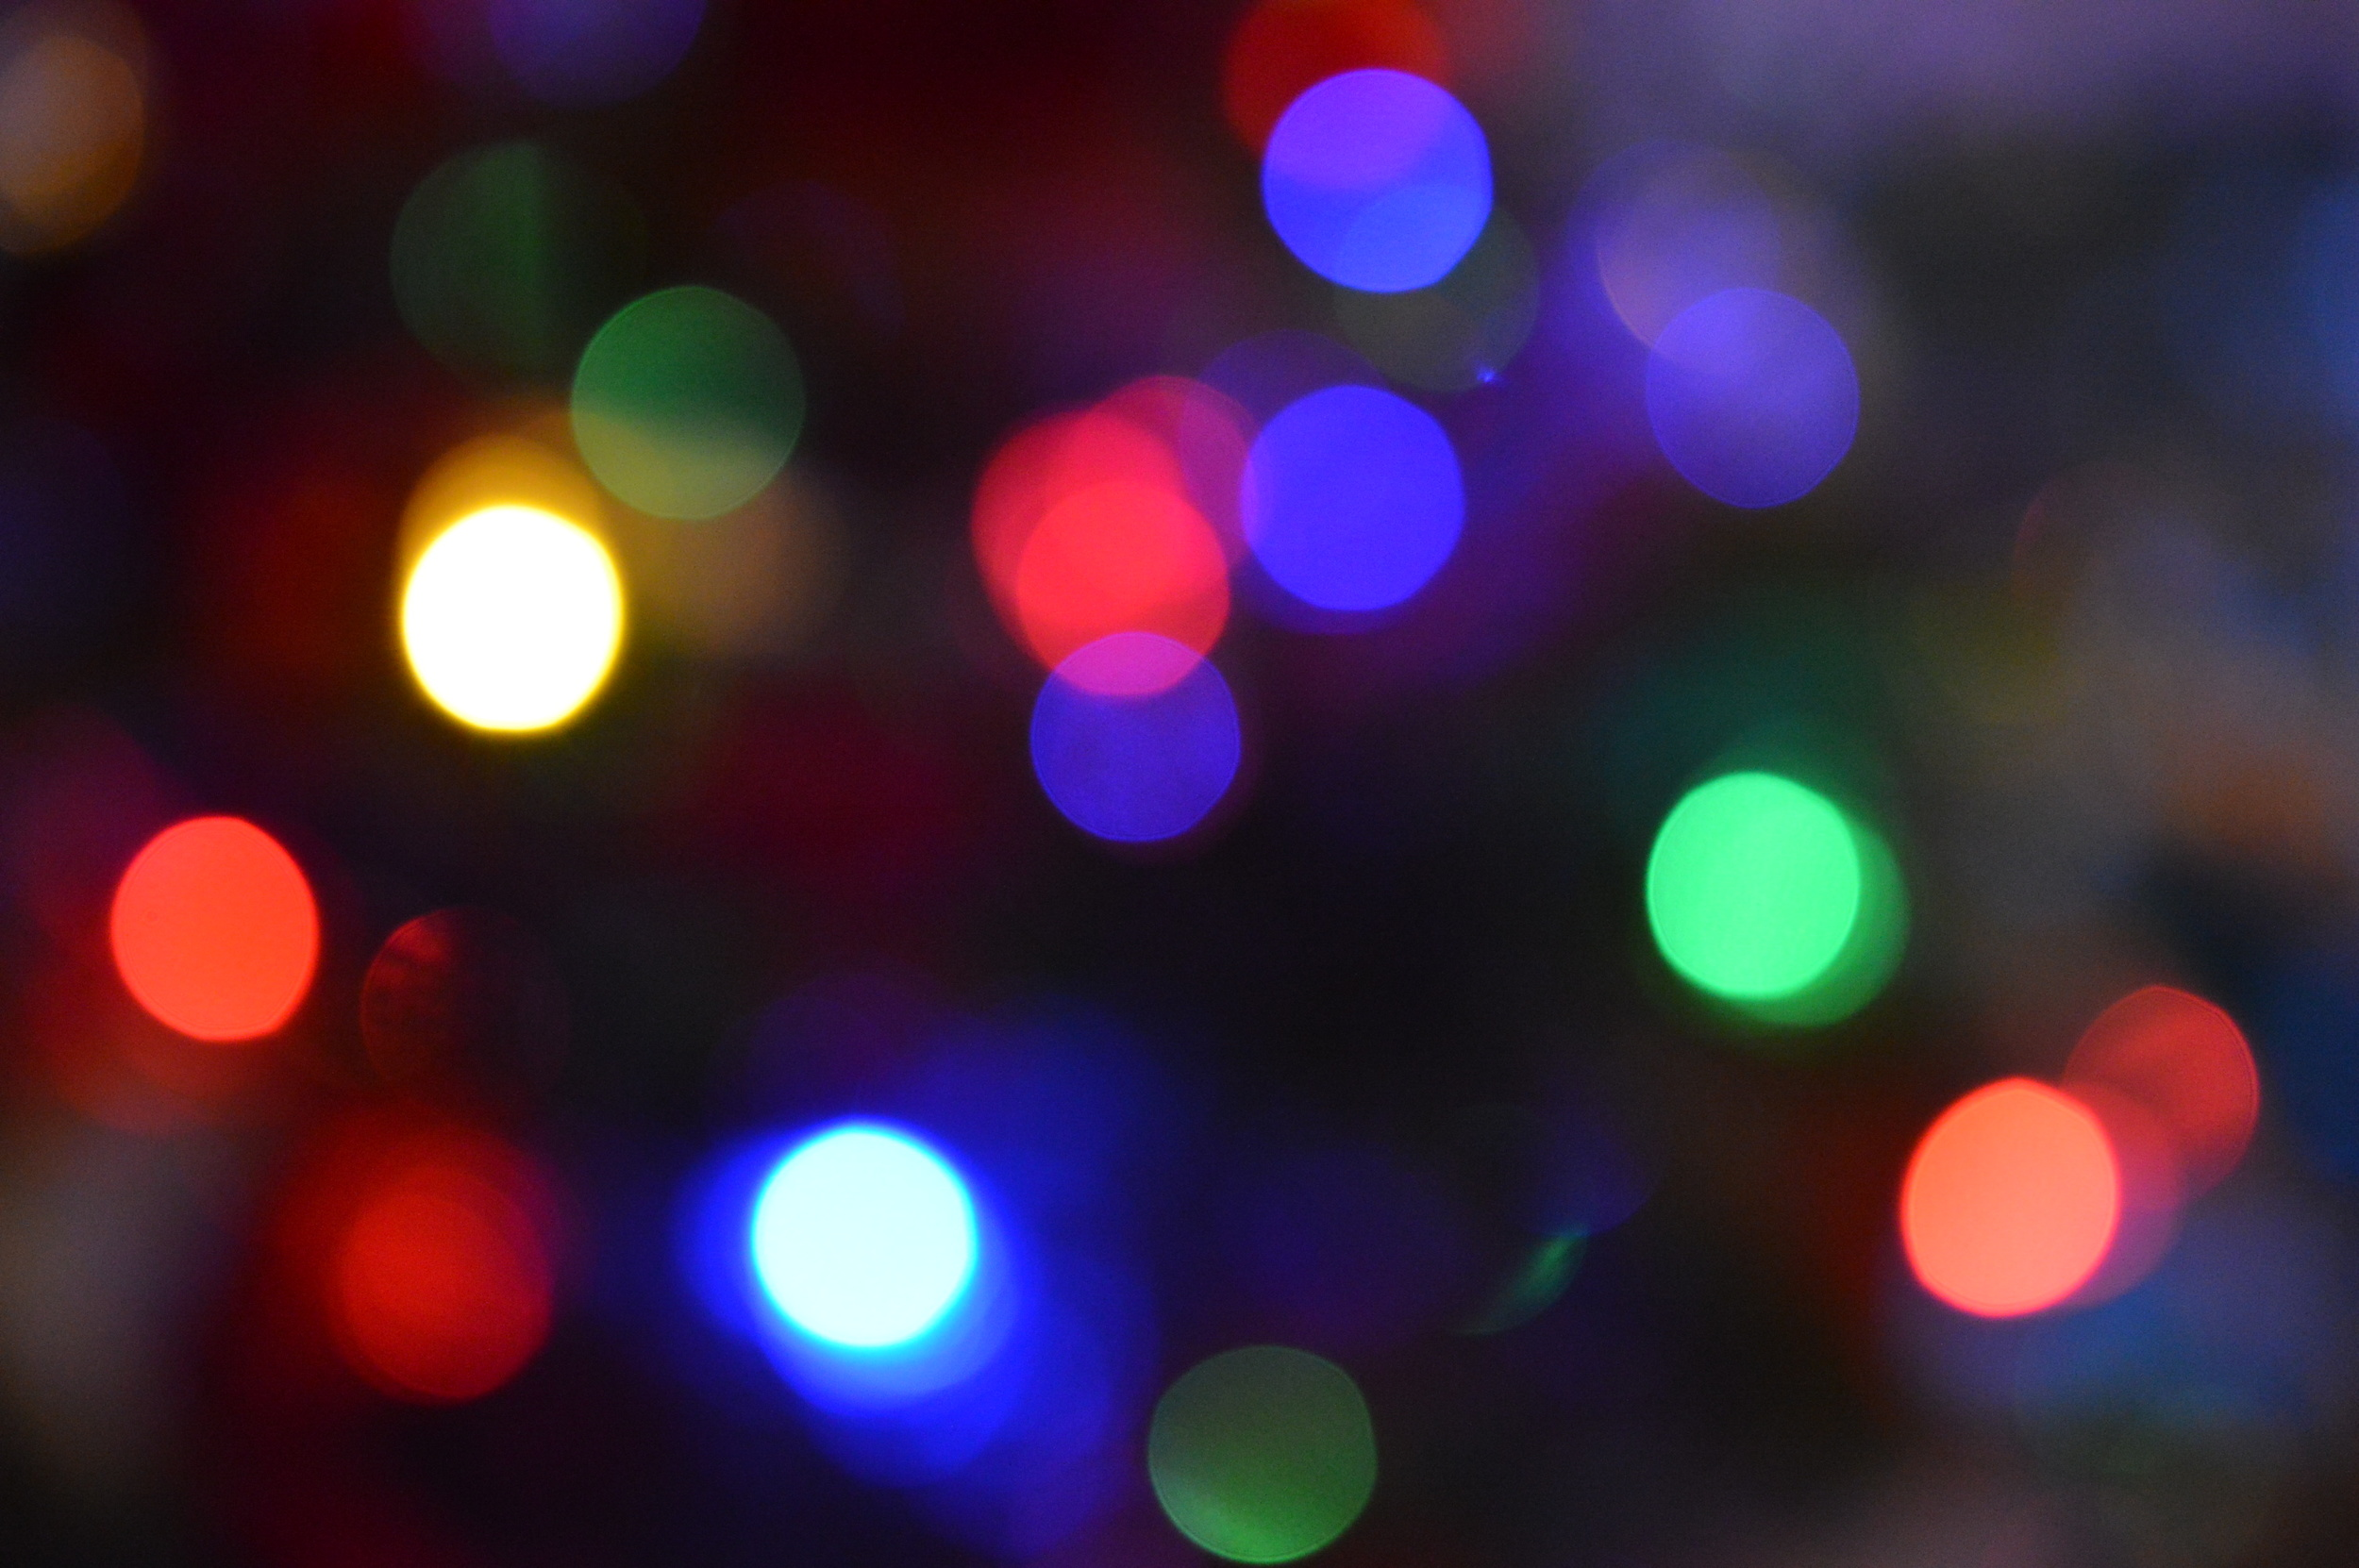 Christmas Lights - Macro Lens